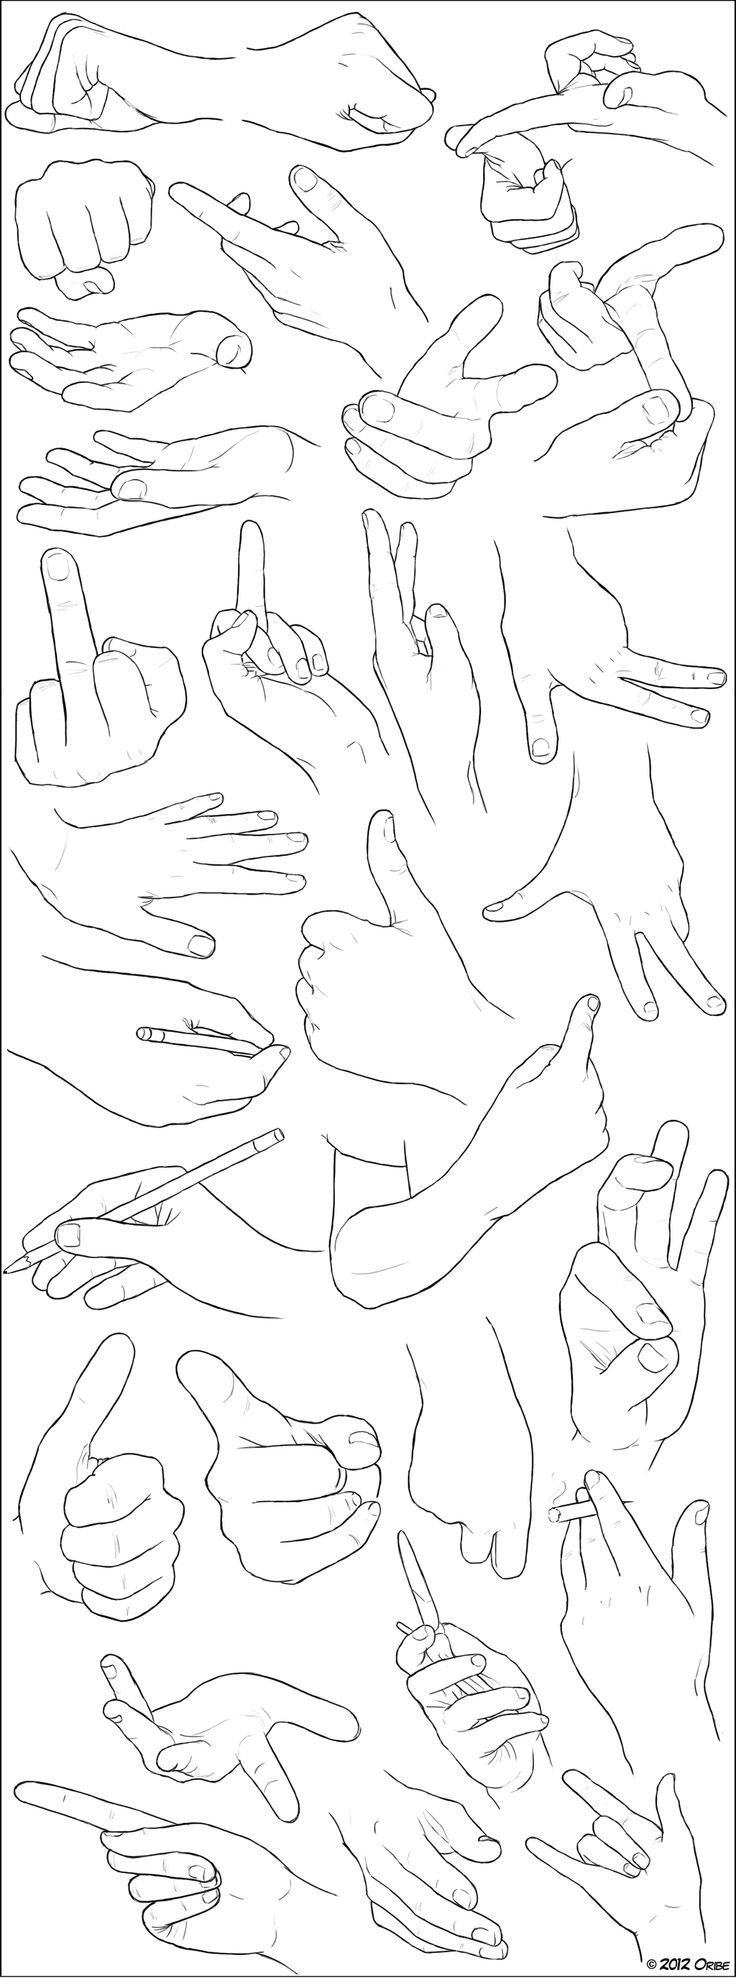 Hand Examples by ~DerSketchie on deviantART ✤ || CHARACTER DESIGN REFERENCES | Find more at https://www.facebook.com/CharacterDesignReferences if you're looking for: #line #art #character #design #model #sheet #illustration #expressions #best #concept #animation #drawing #archive #library #reference #anatomy #traditional #draw #development #artist #pose #settei #gestures #how #to #tutorial #conceptart #modelsheet #cartoon #hand